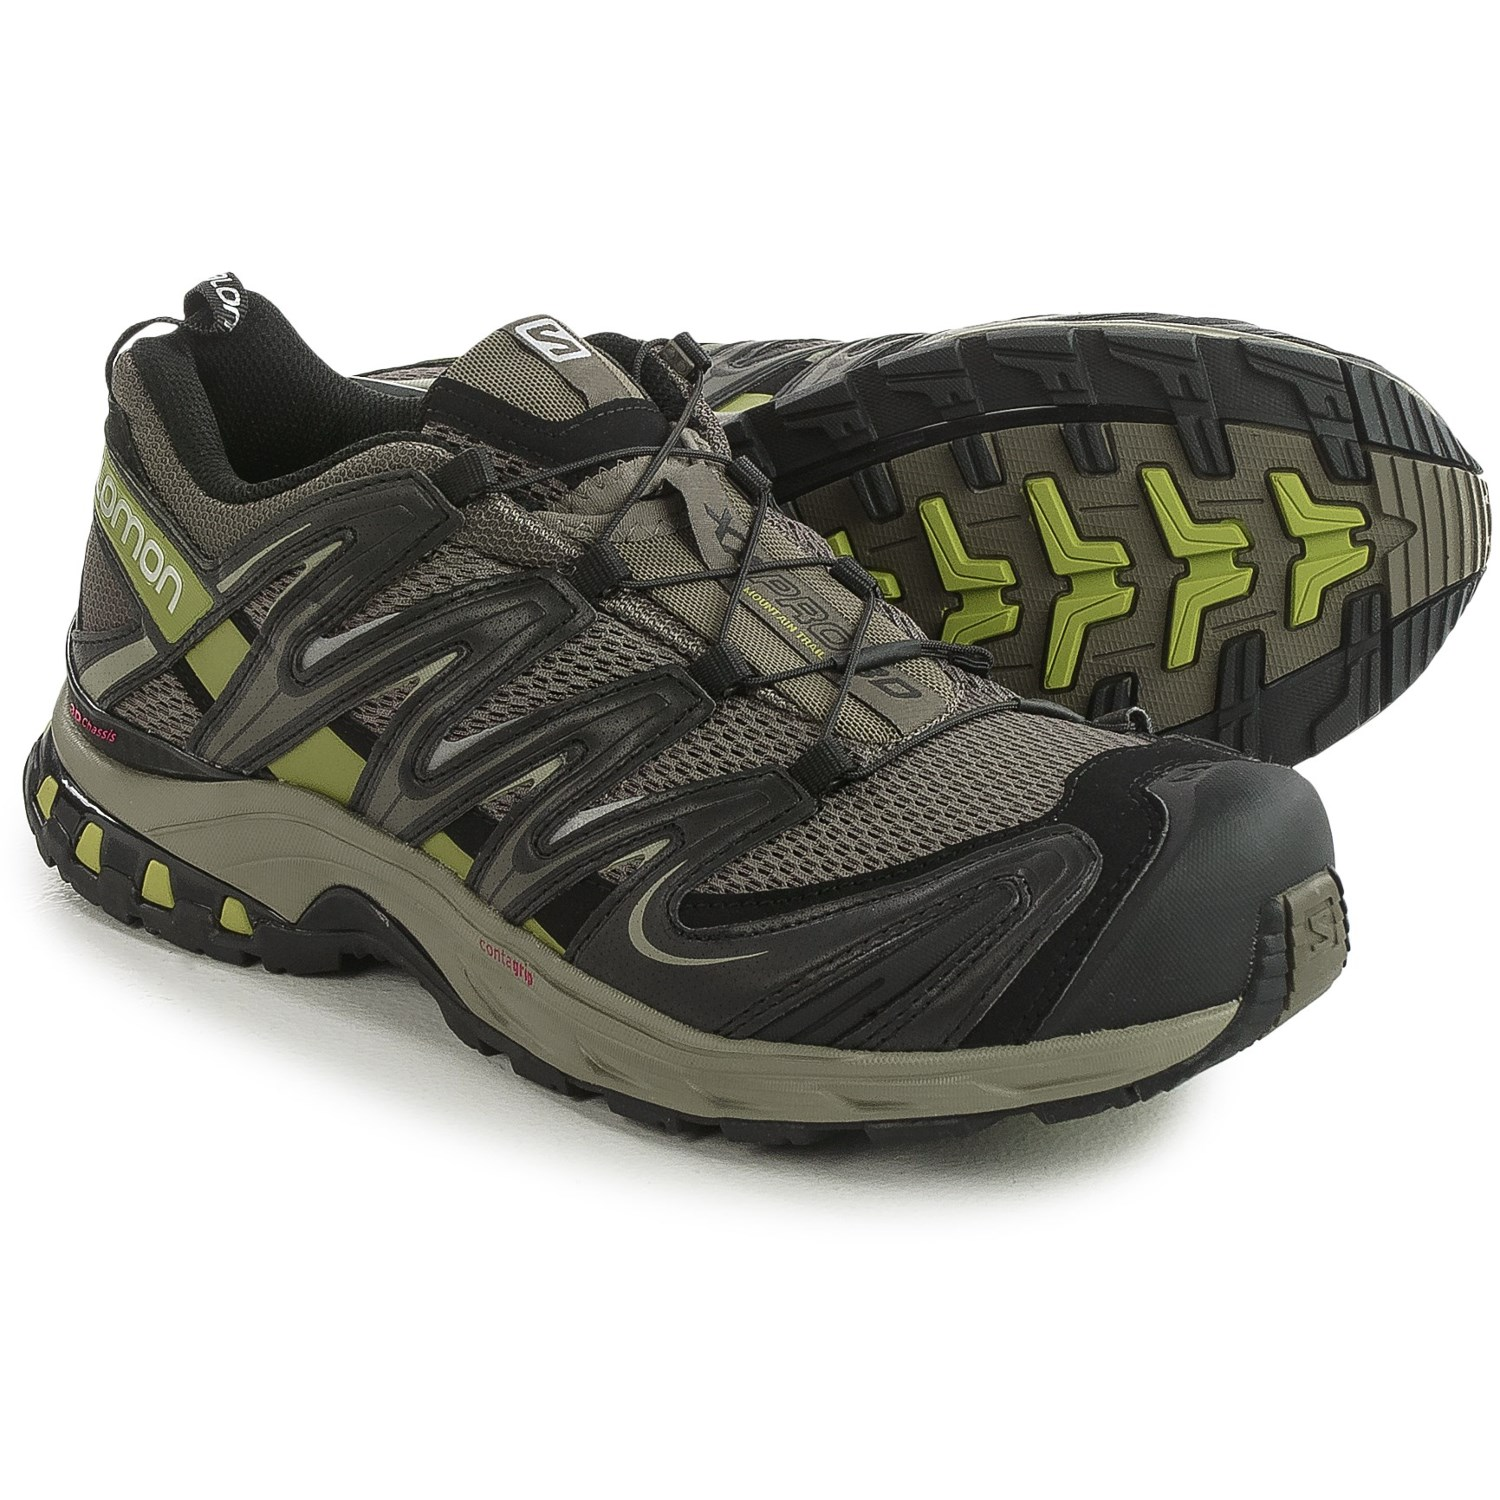 Salomon Xa Pro 3d Trail Running Shoes For Men Save 62